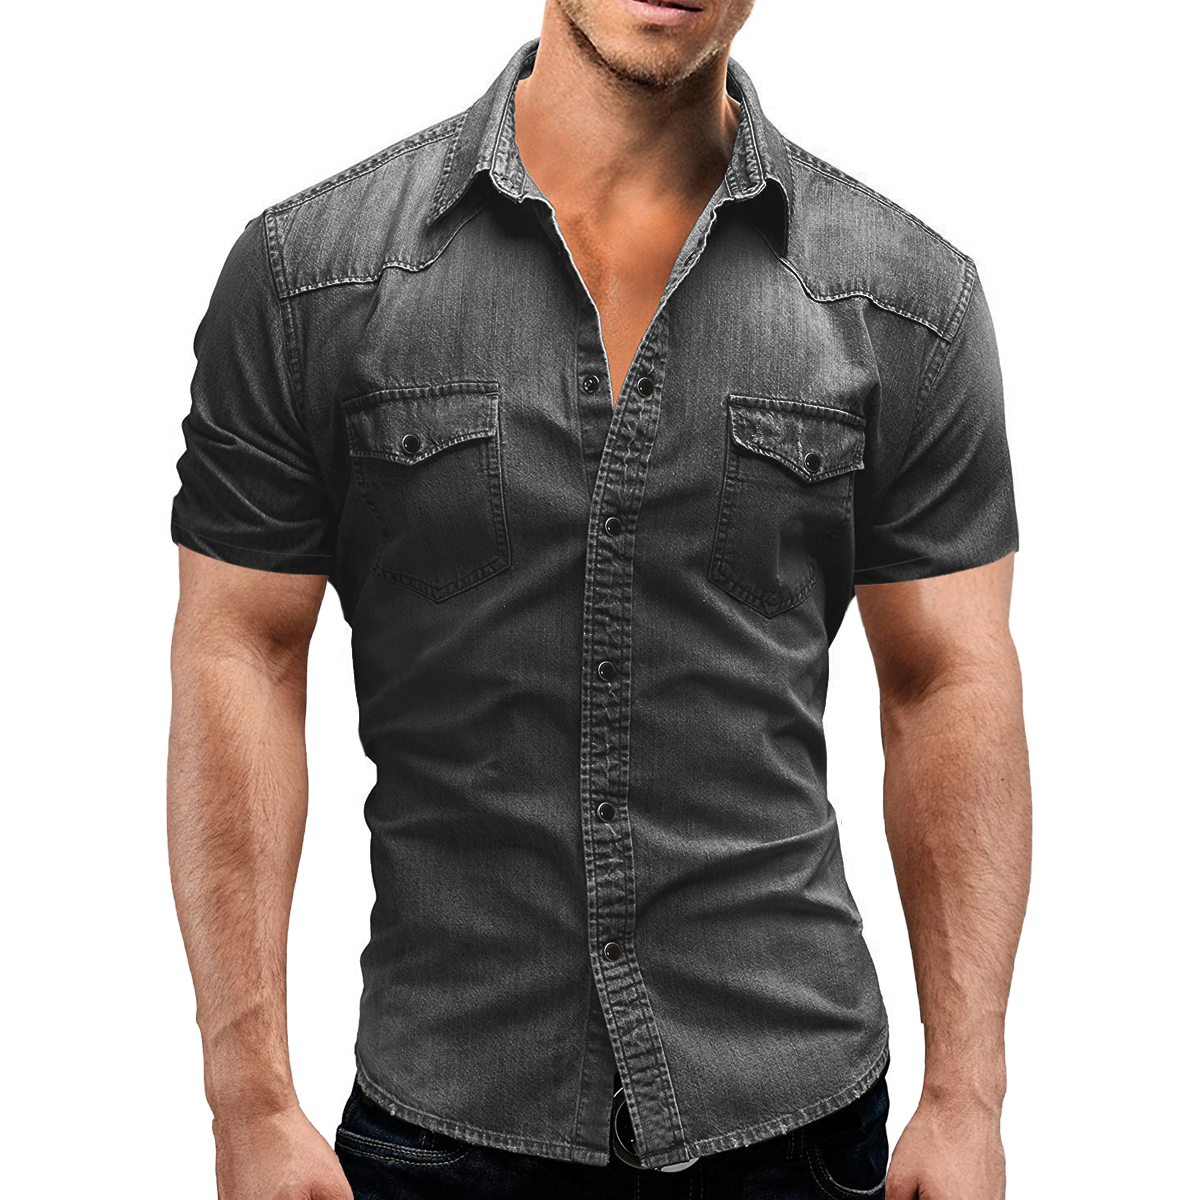 Men Denim Short Sleeve Soft Cotton Elastic Jeans Shirt Men Men's Clothings Men's Shirts Men's Tops